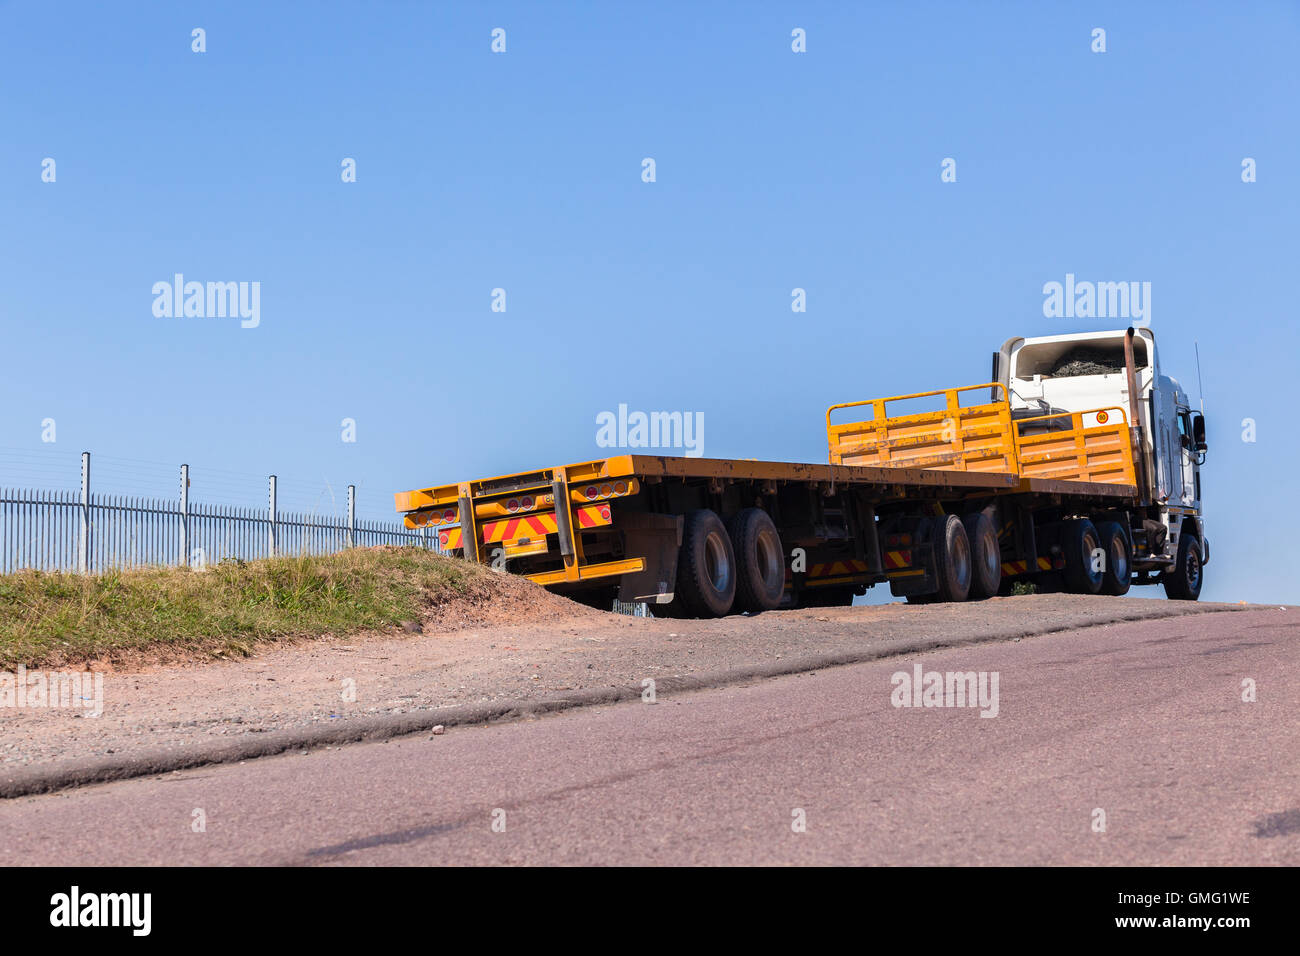 Truck vehicle with yellow trailers awaiting cargo to transport - Stock Image